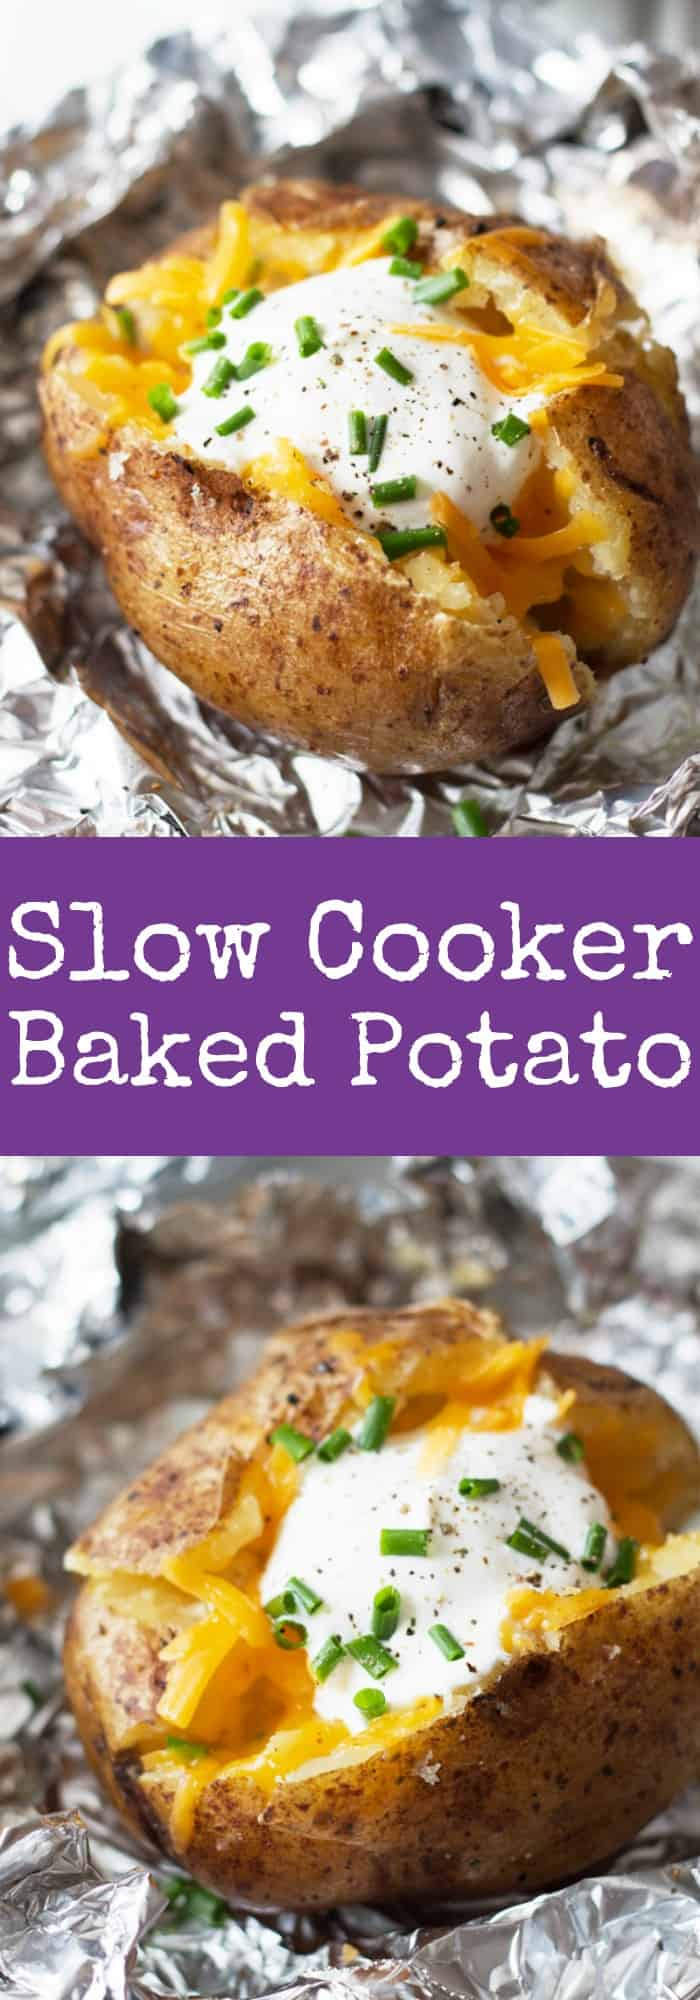 Slow Cooker Baked Potatoes - an easy way to come home to baked ...